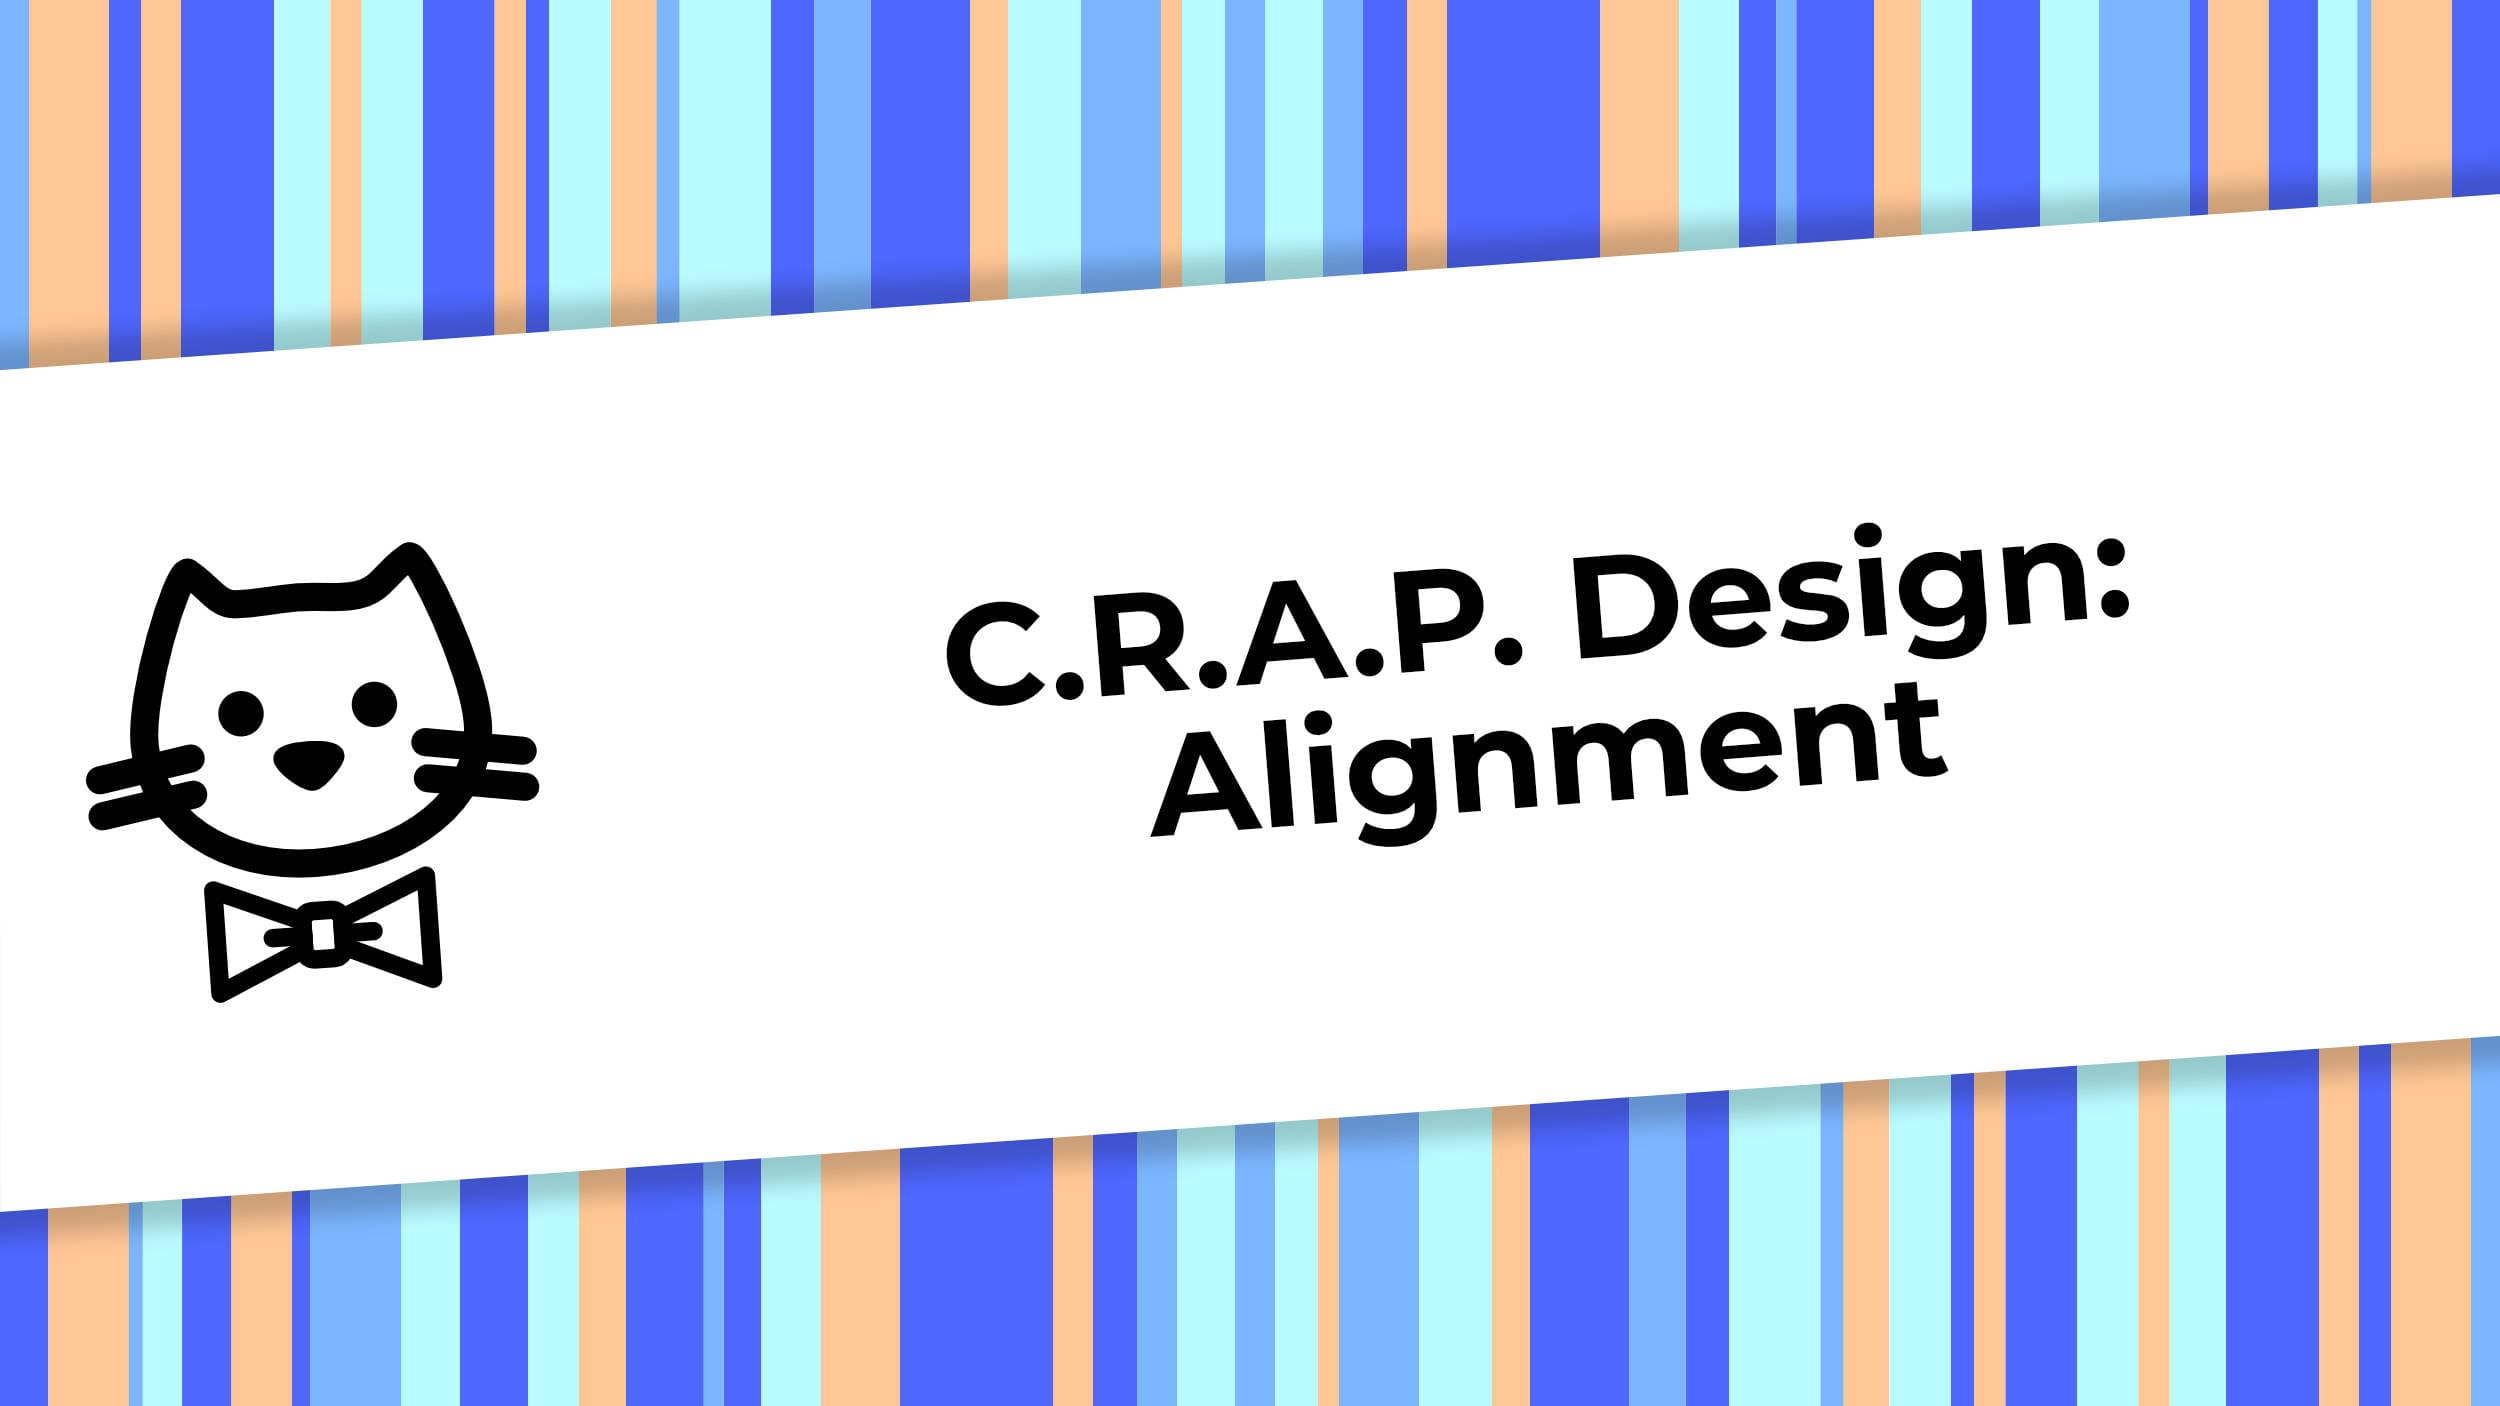 CRAP Design - Alignment.jpg